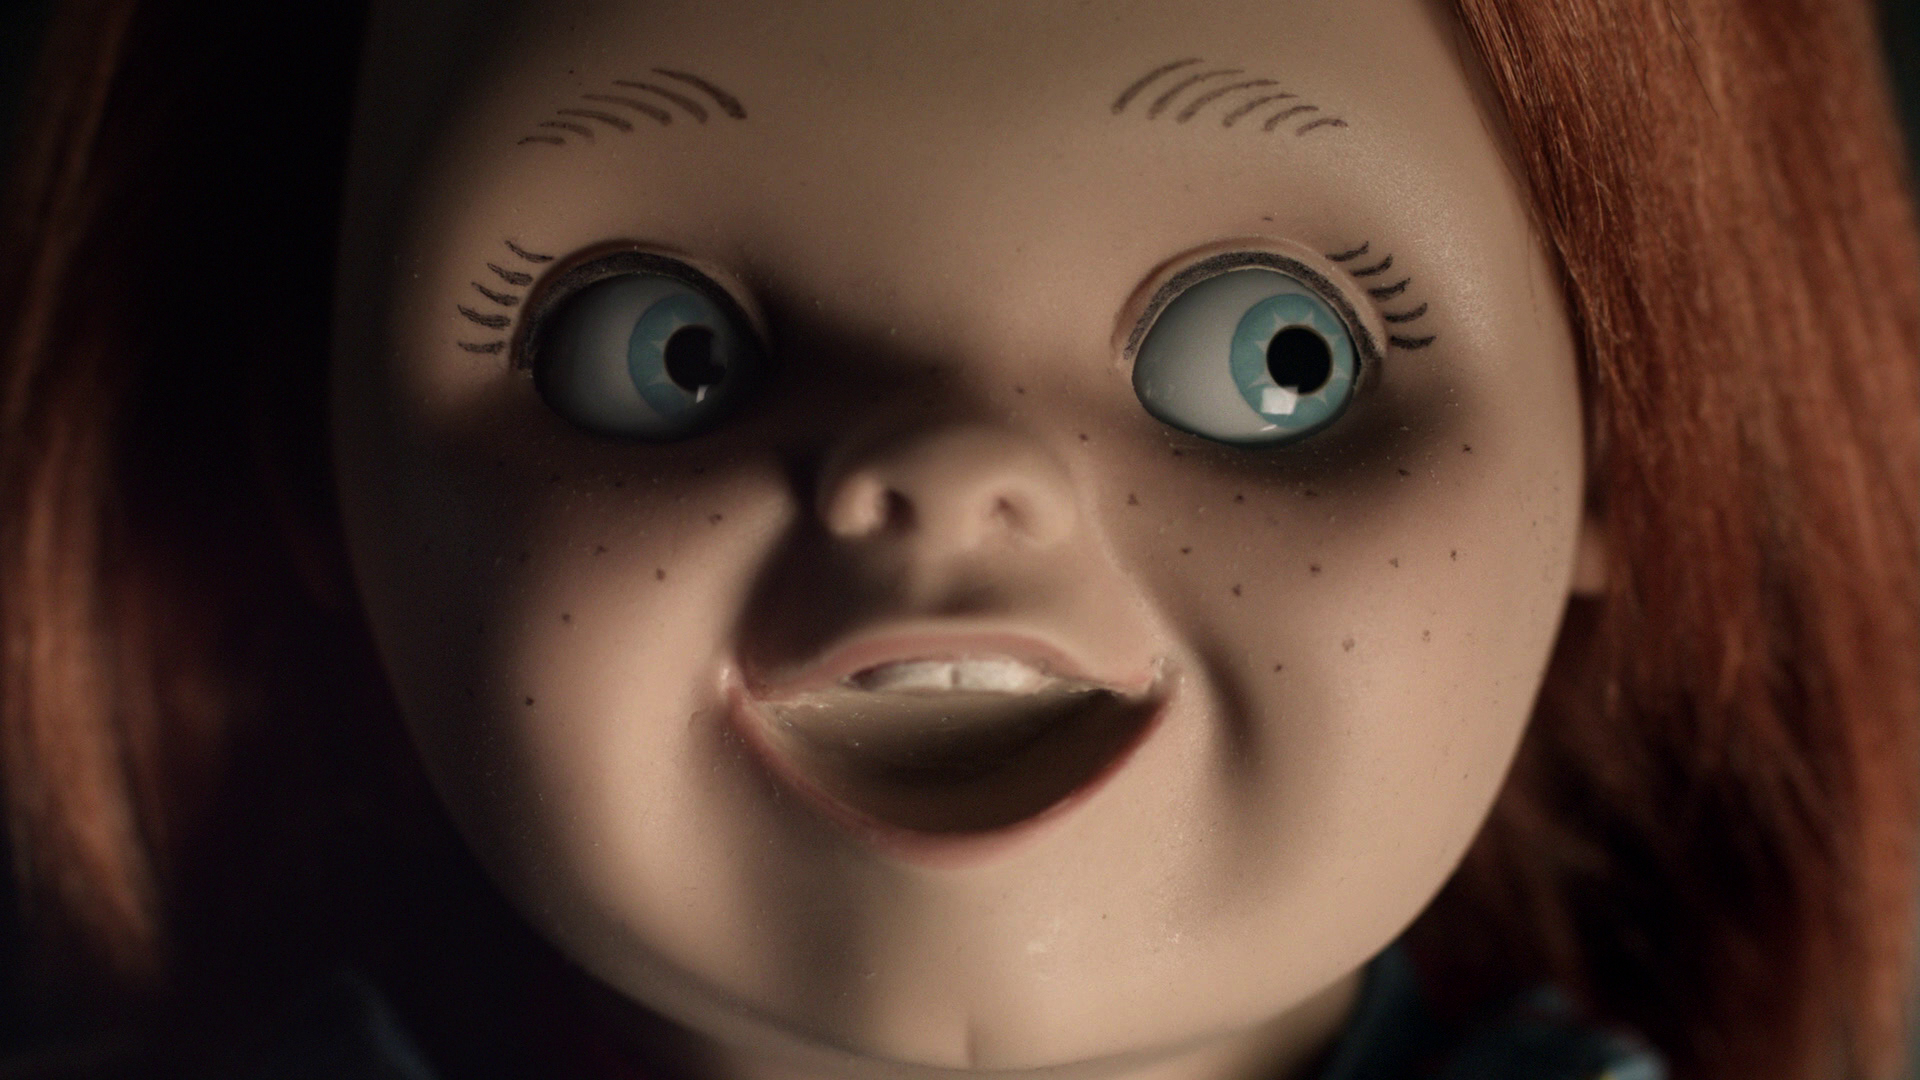 Free Download Chucky Doll Full Hd Wallpaper 1920x1080 For Your Desktop Mobile Tablet Explore 47 Chucky Doll Wallpaper Bride Of Chucky Wallpaper Chucky And Tiffany Wallpaper Curse Of Chucky Wallpaper